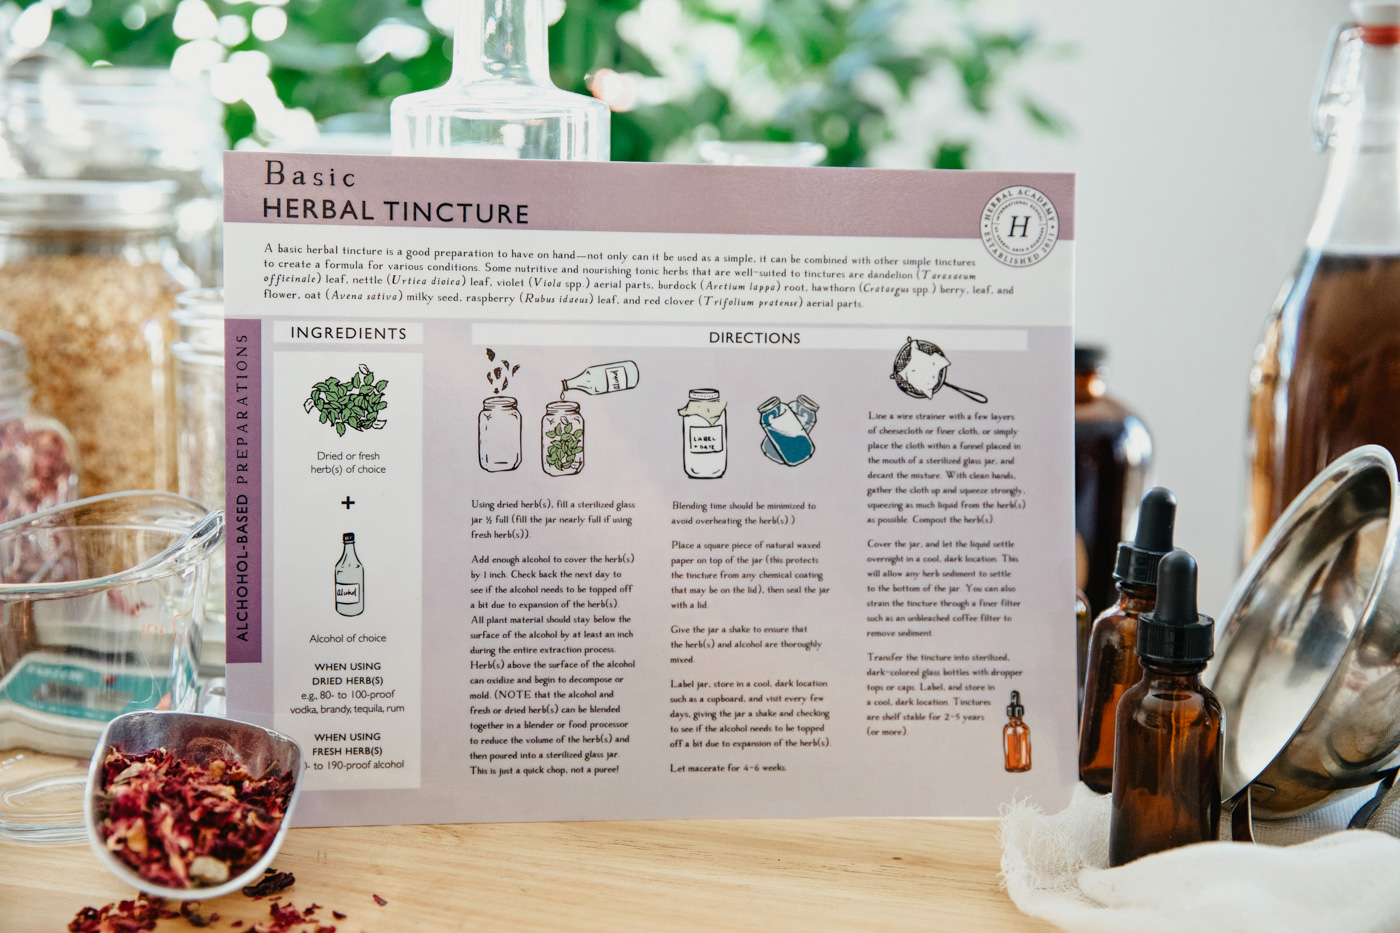 Herbal Academy -Making Herbal Preparations 101 Course guides